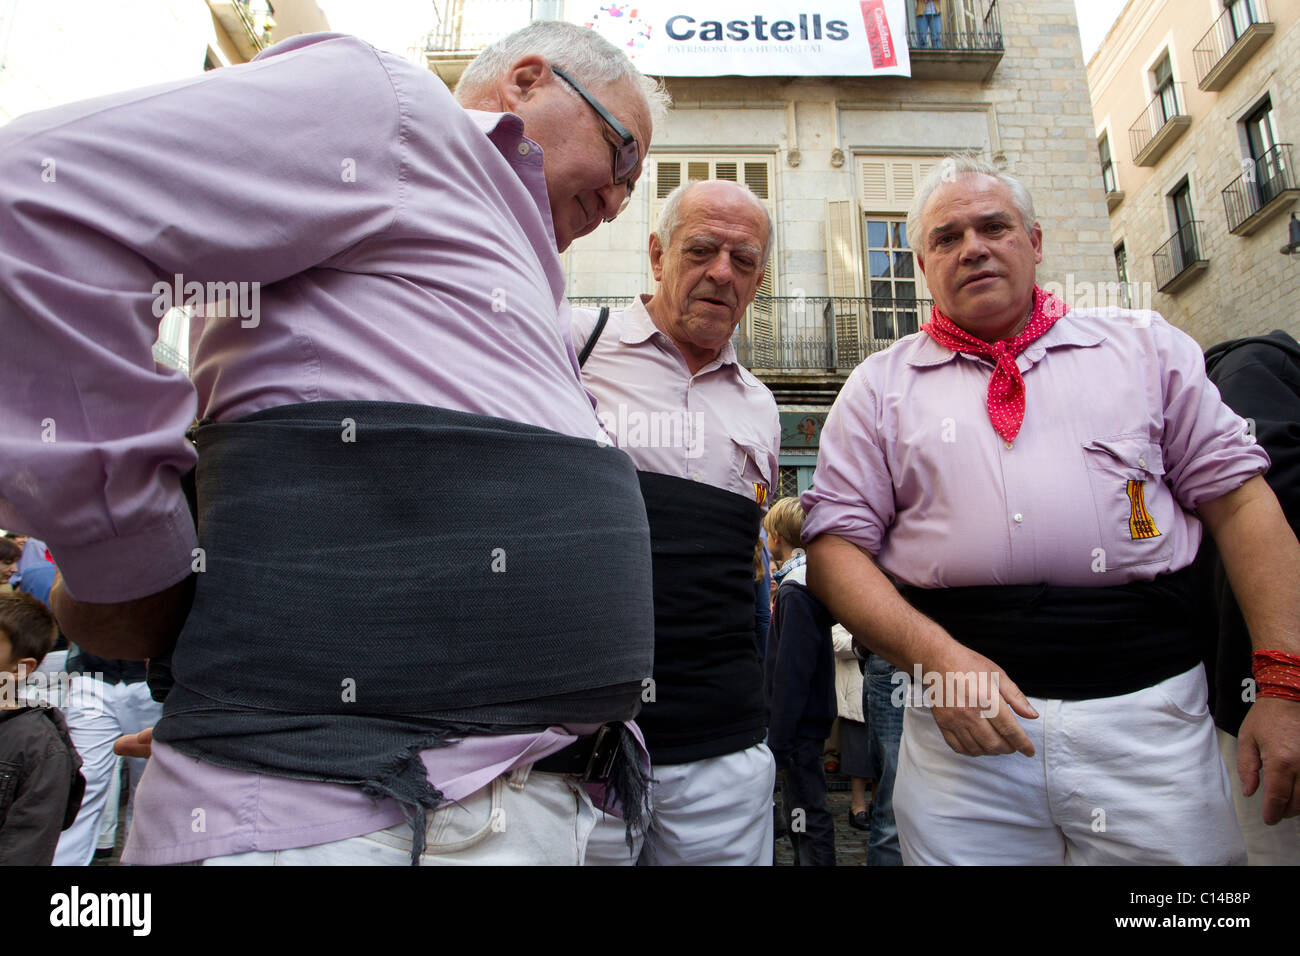 Participants in human tower festival in Catalonia, Spain wrapping waist bands around their stomachs - Stock Image